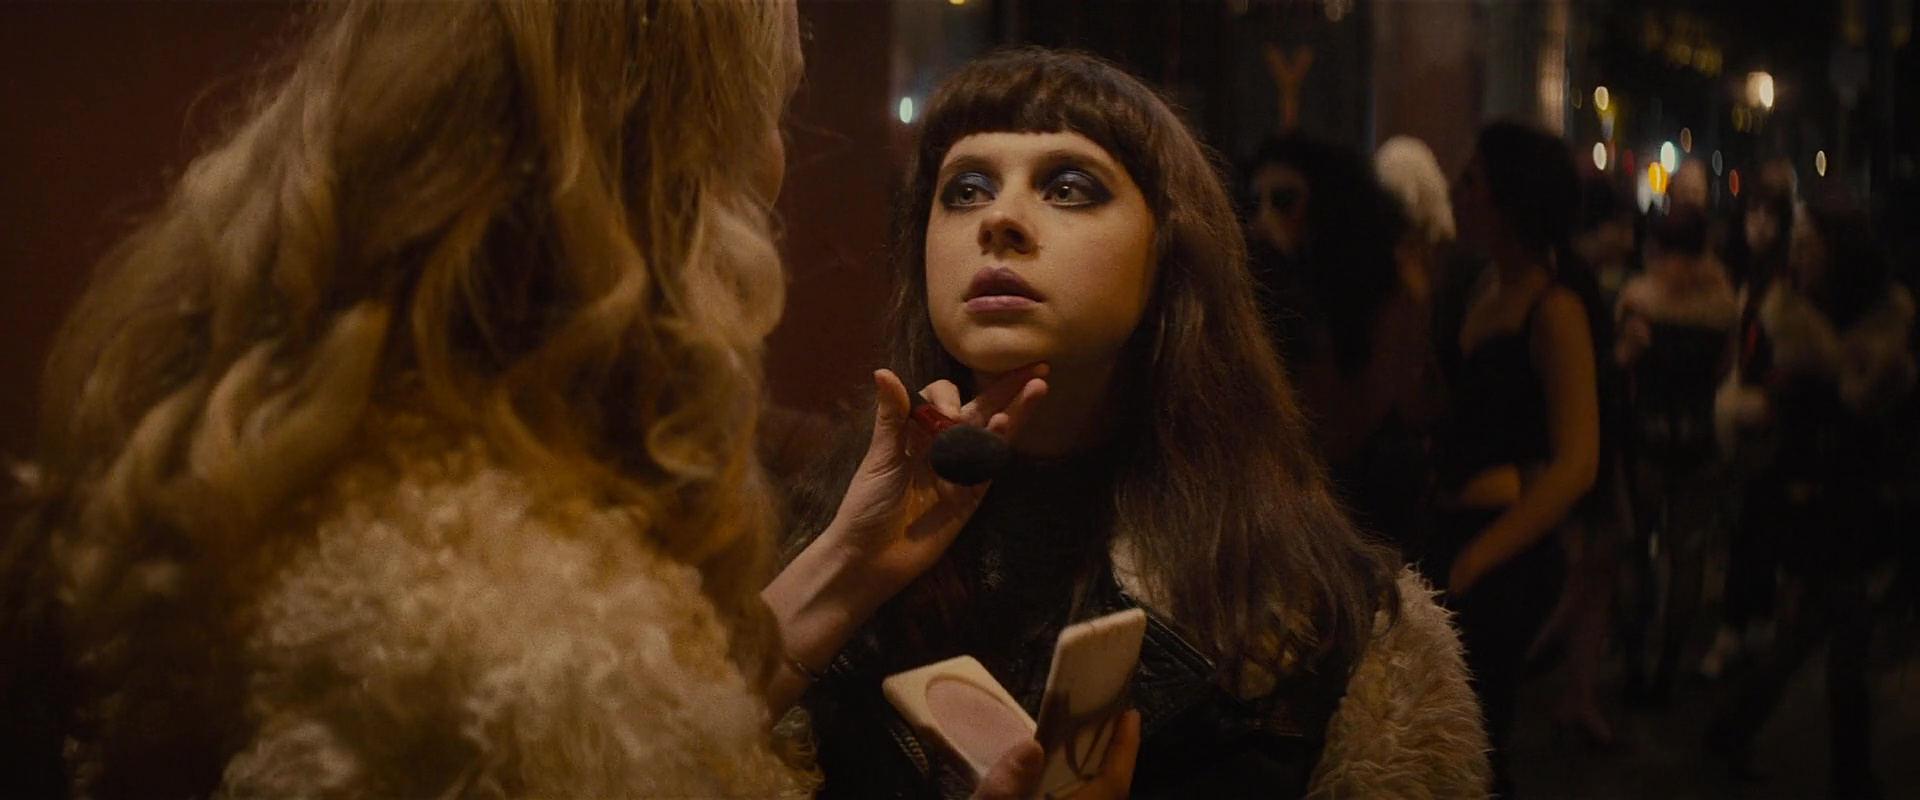 The Diary of a Teenage Girl film still 4